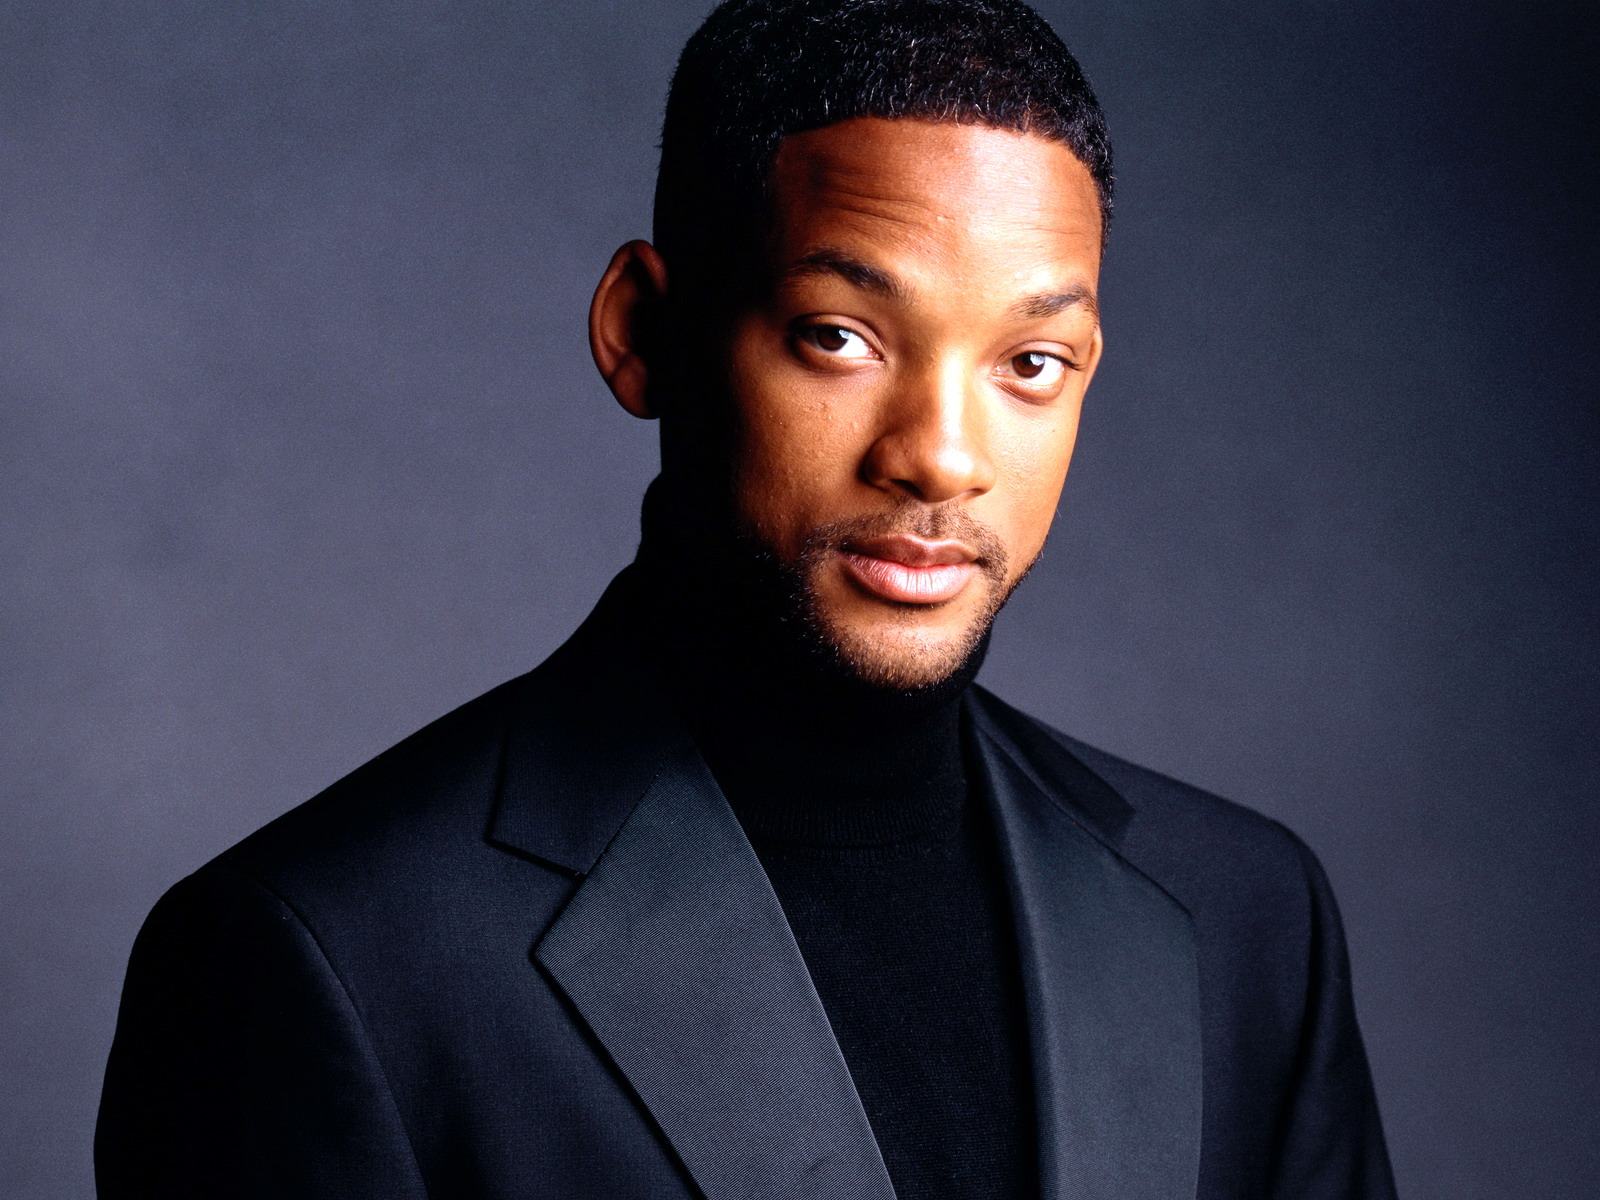 """If you're absent during my struggle, don't expect to be present during my success."" - Will Smith"